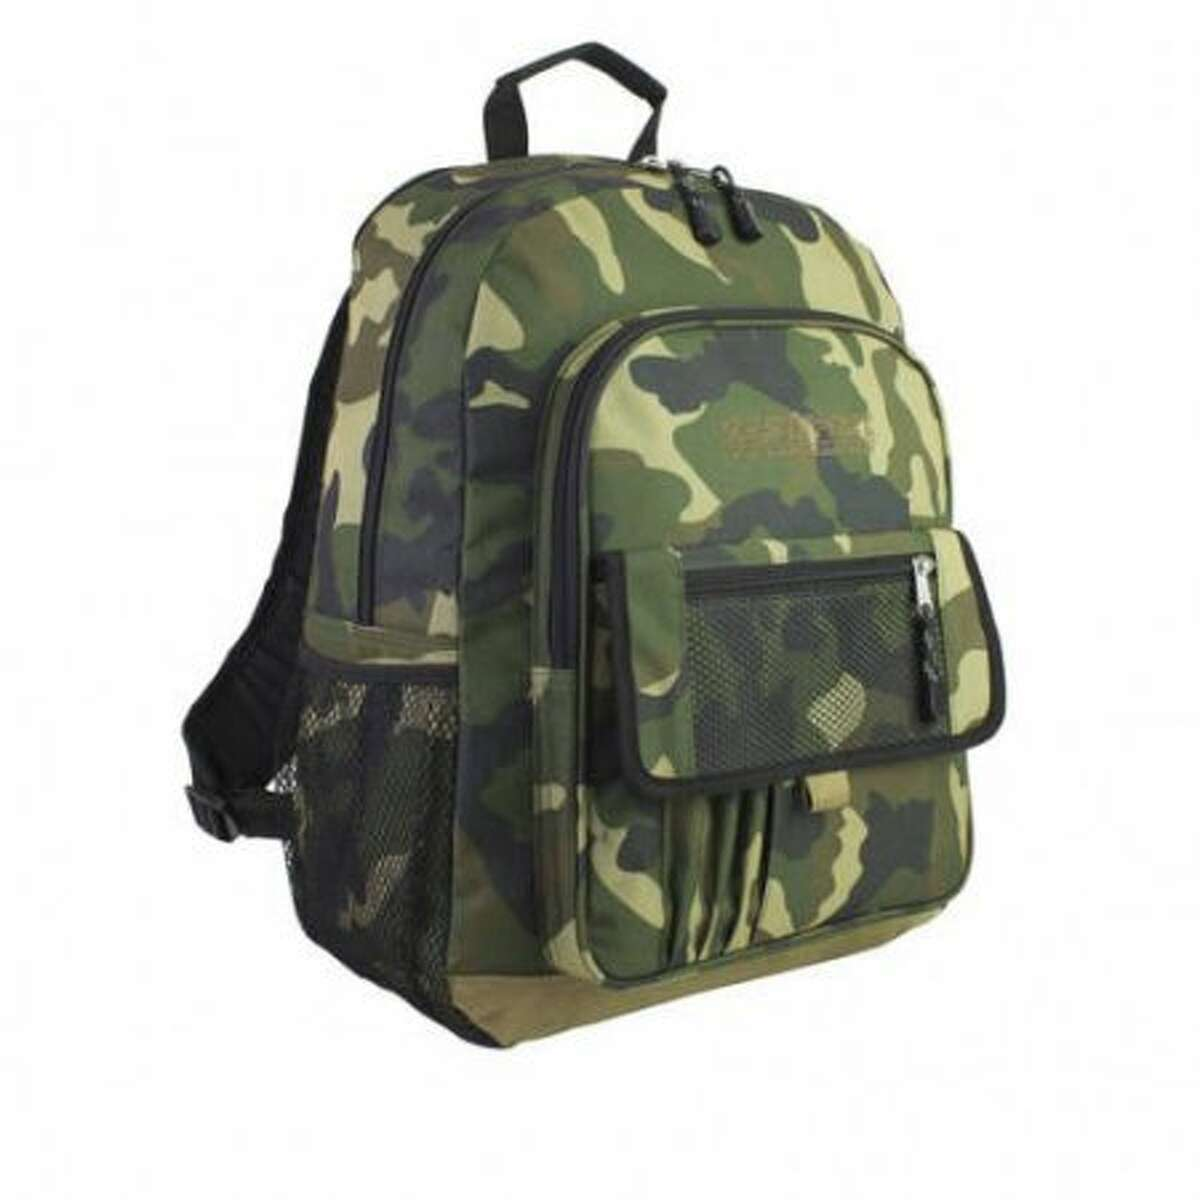 Eastport backpack with a lifetime guarantee: $14.88